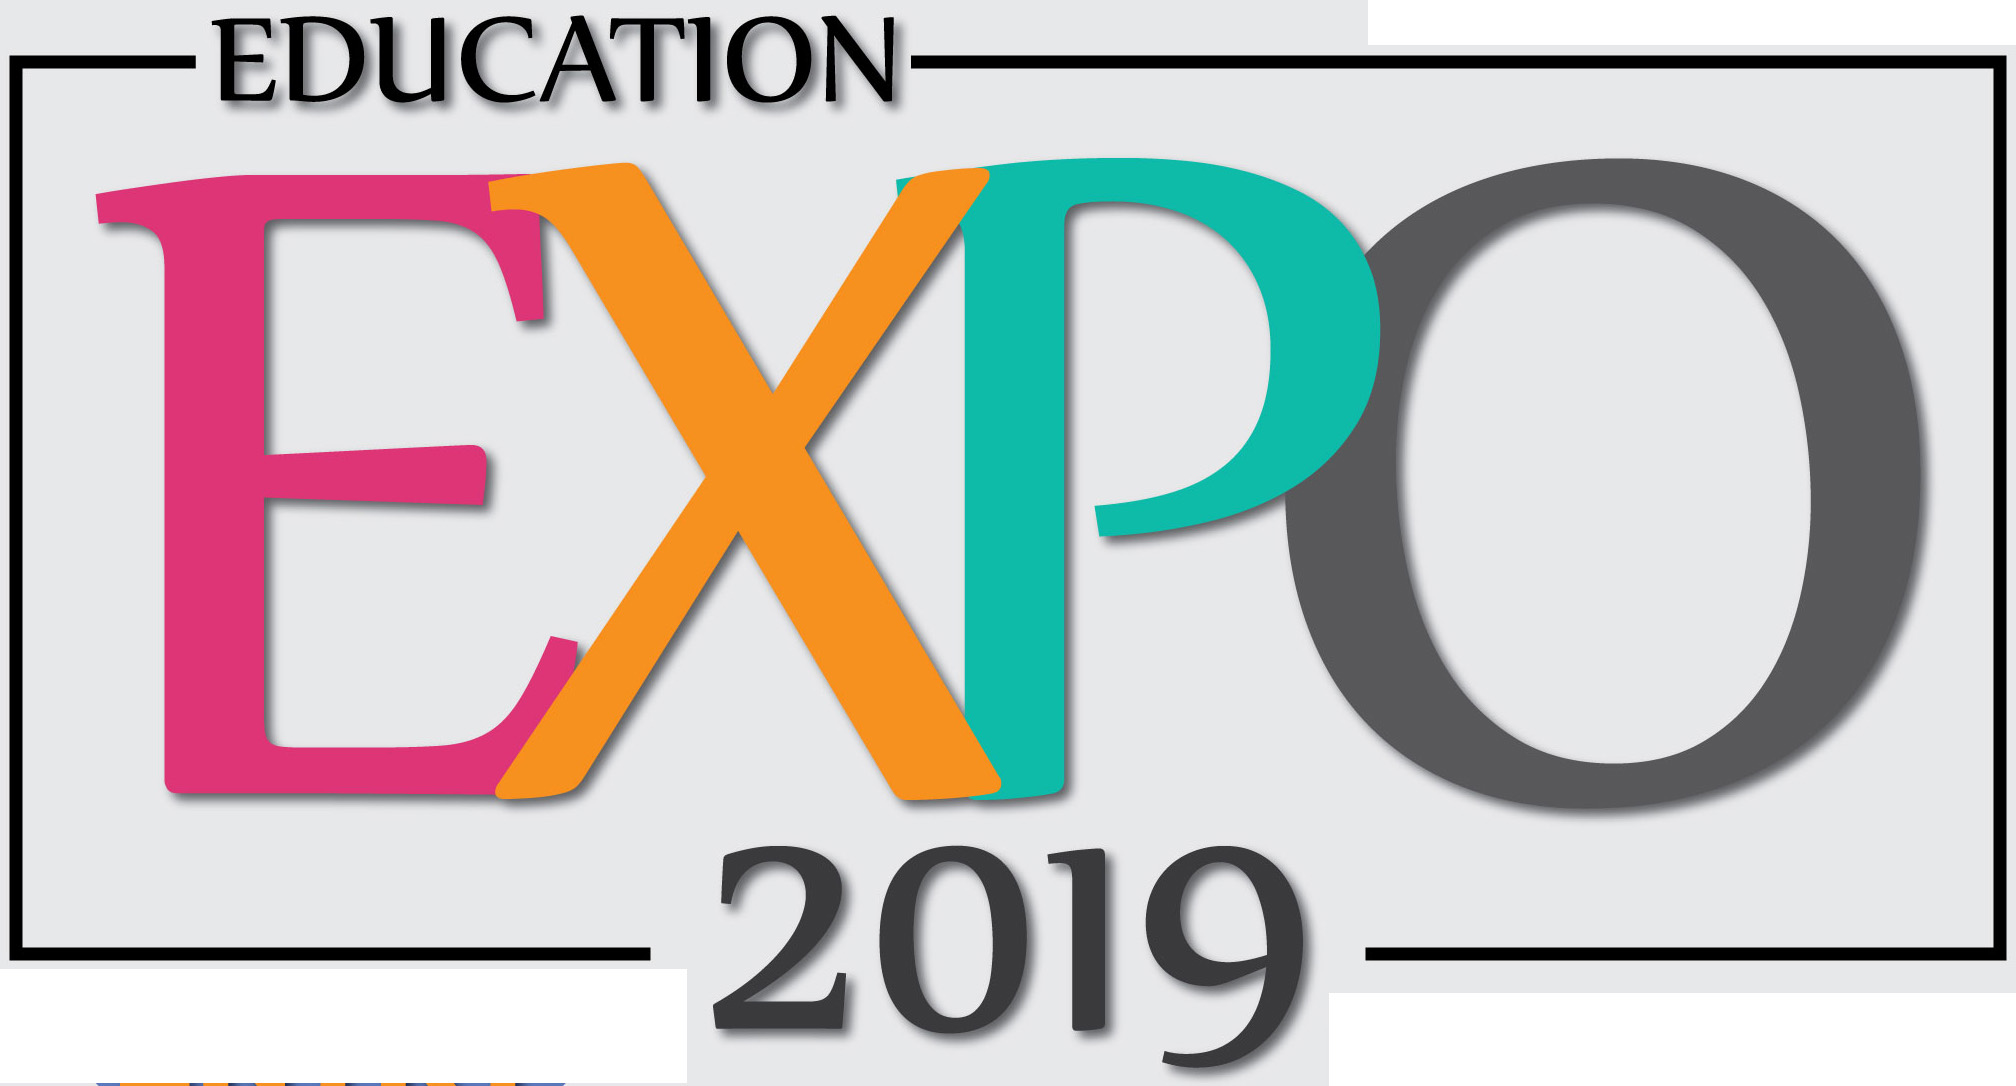 MakeGenius Education Expo 2019, Pondicherry, Puducherry, India